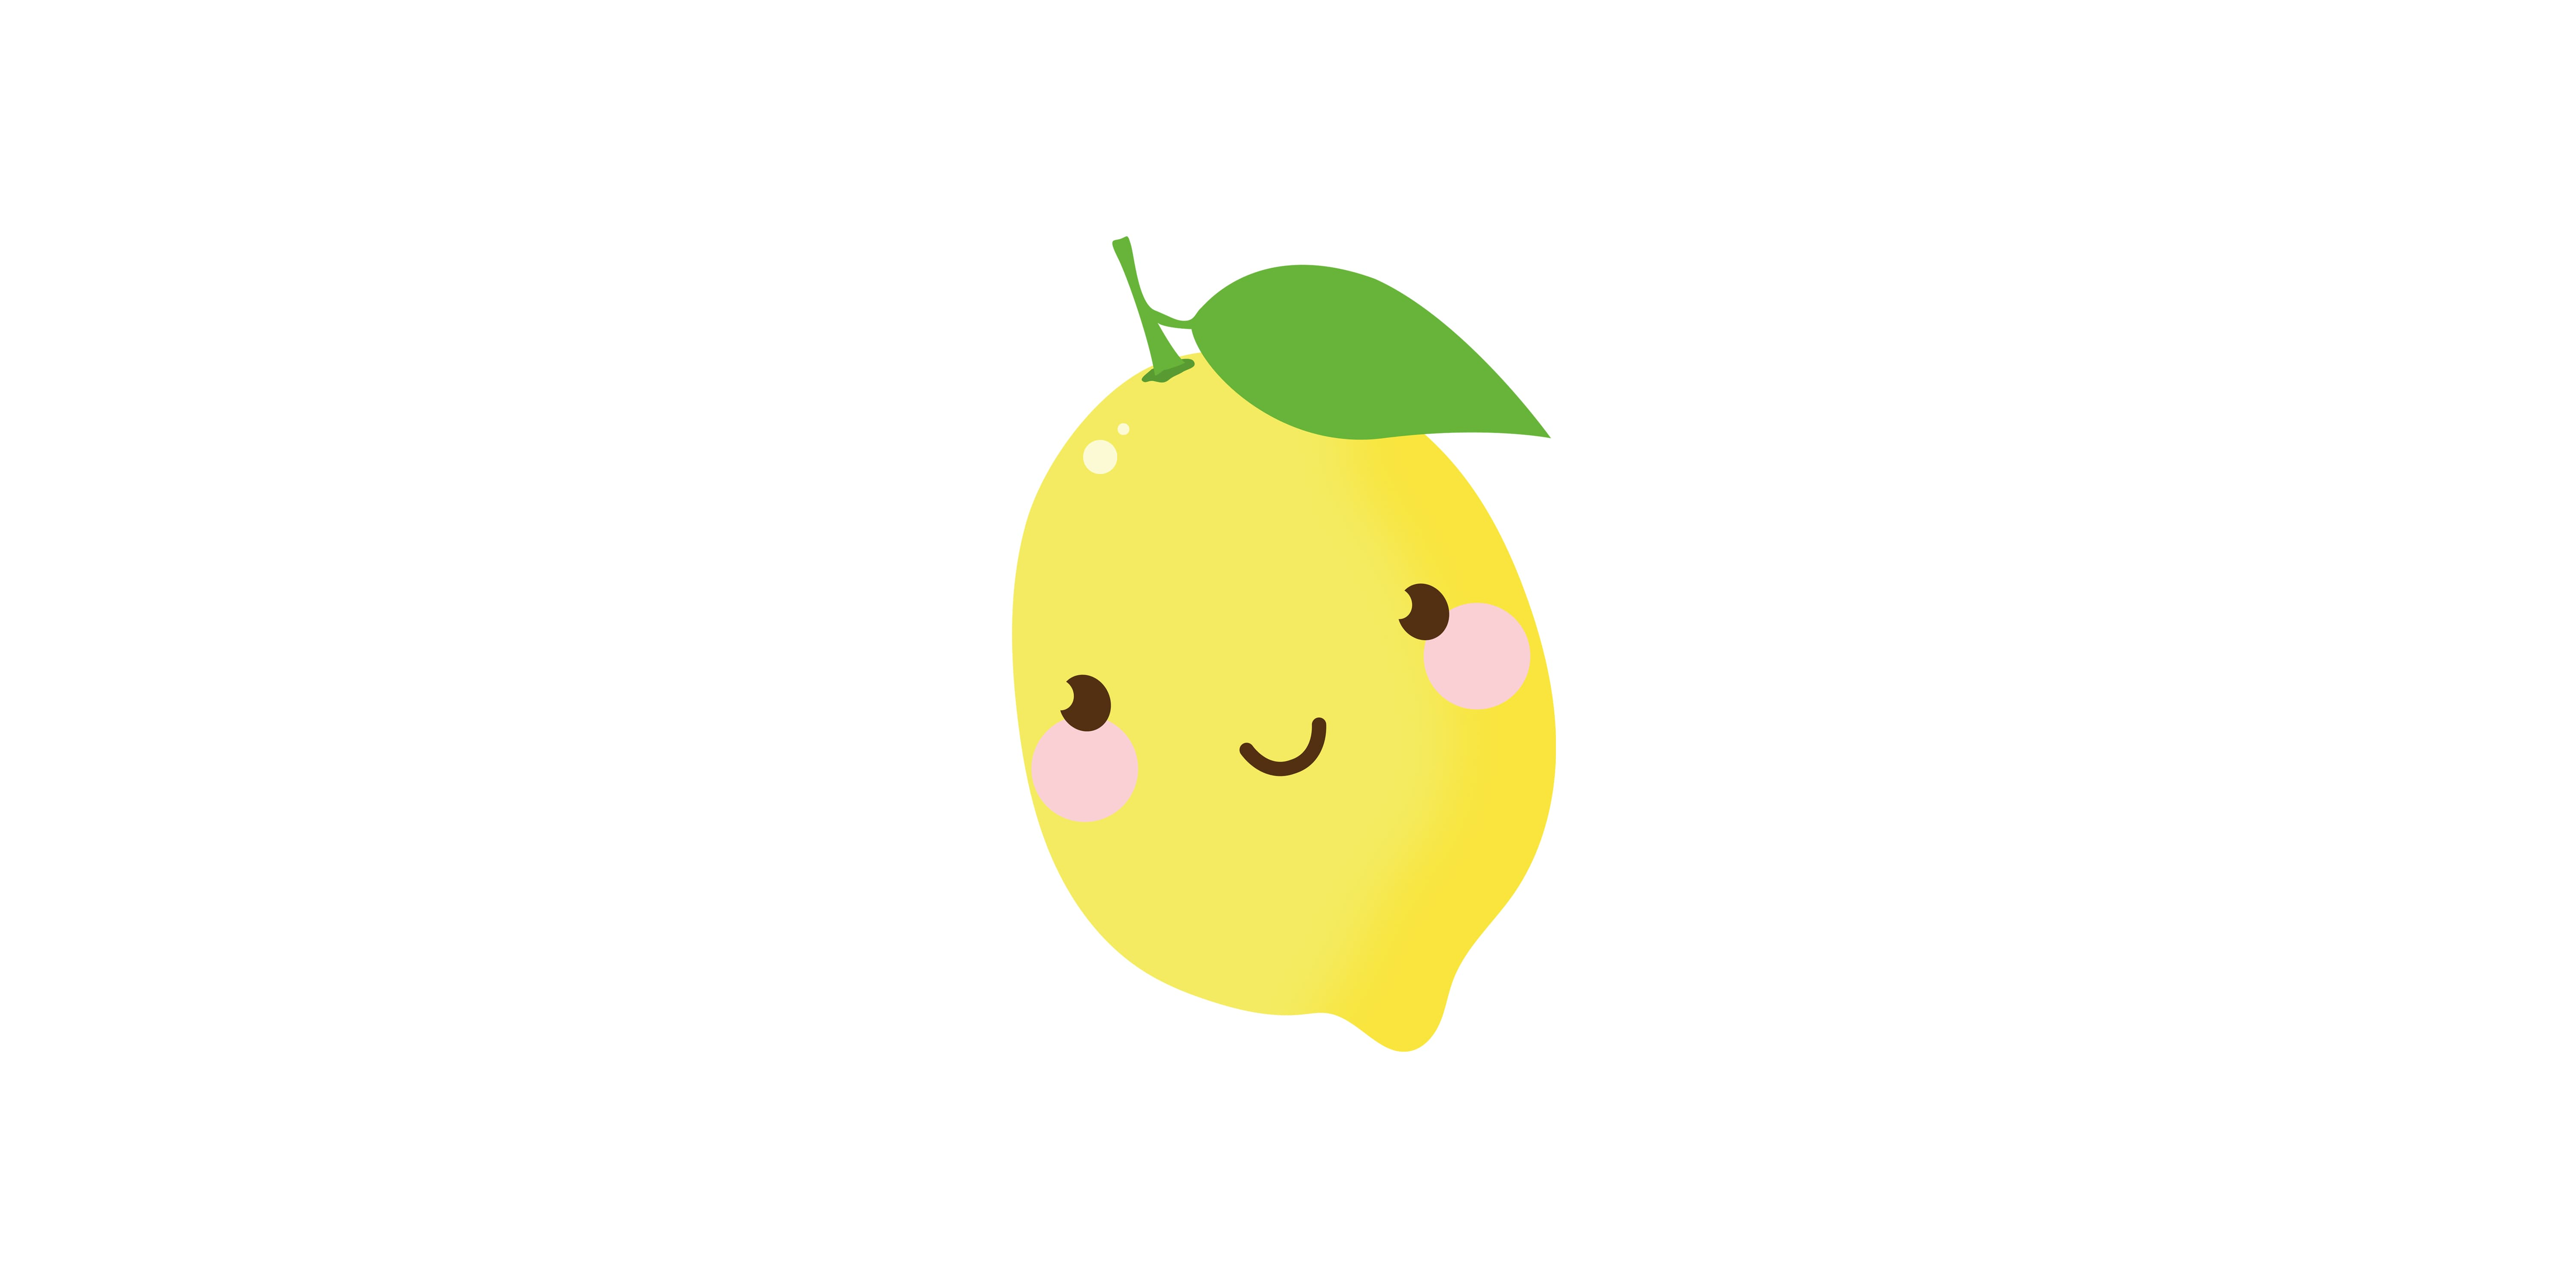 Your baby is now roughly the size of a lemon.